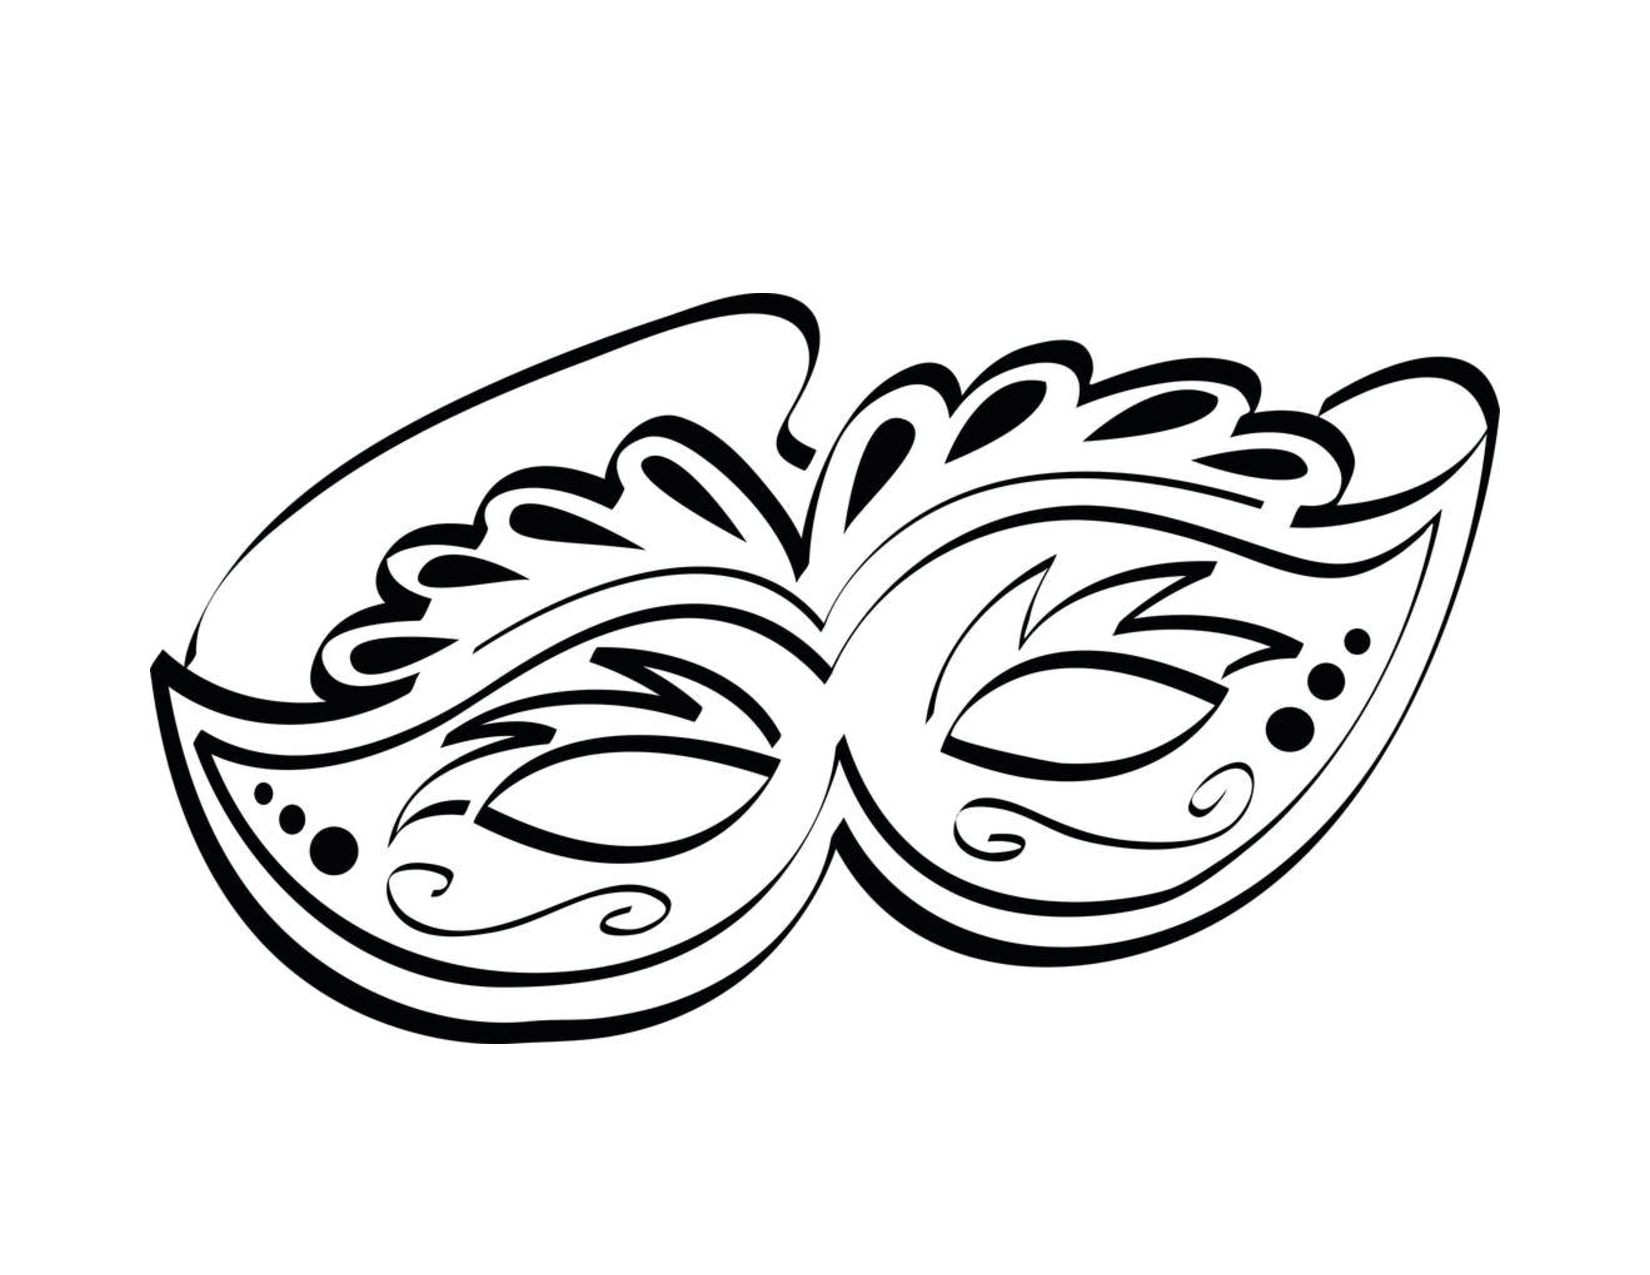 Mask Coloring Pages - Free Printable Mask Coloring Pages for Kids